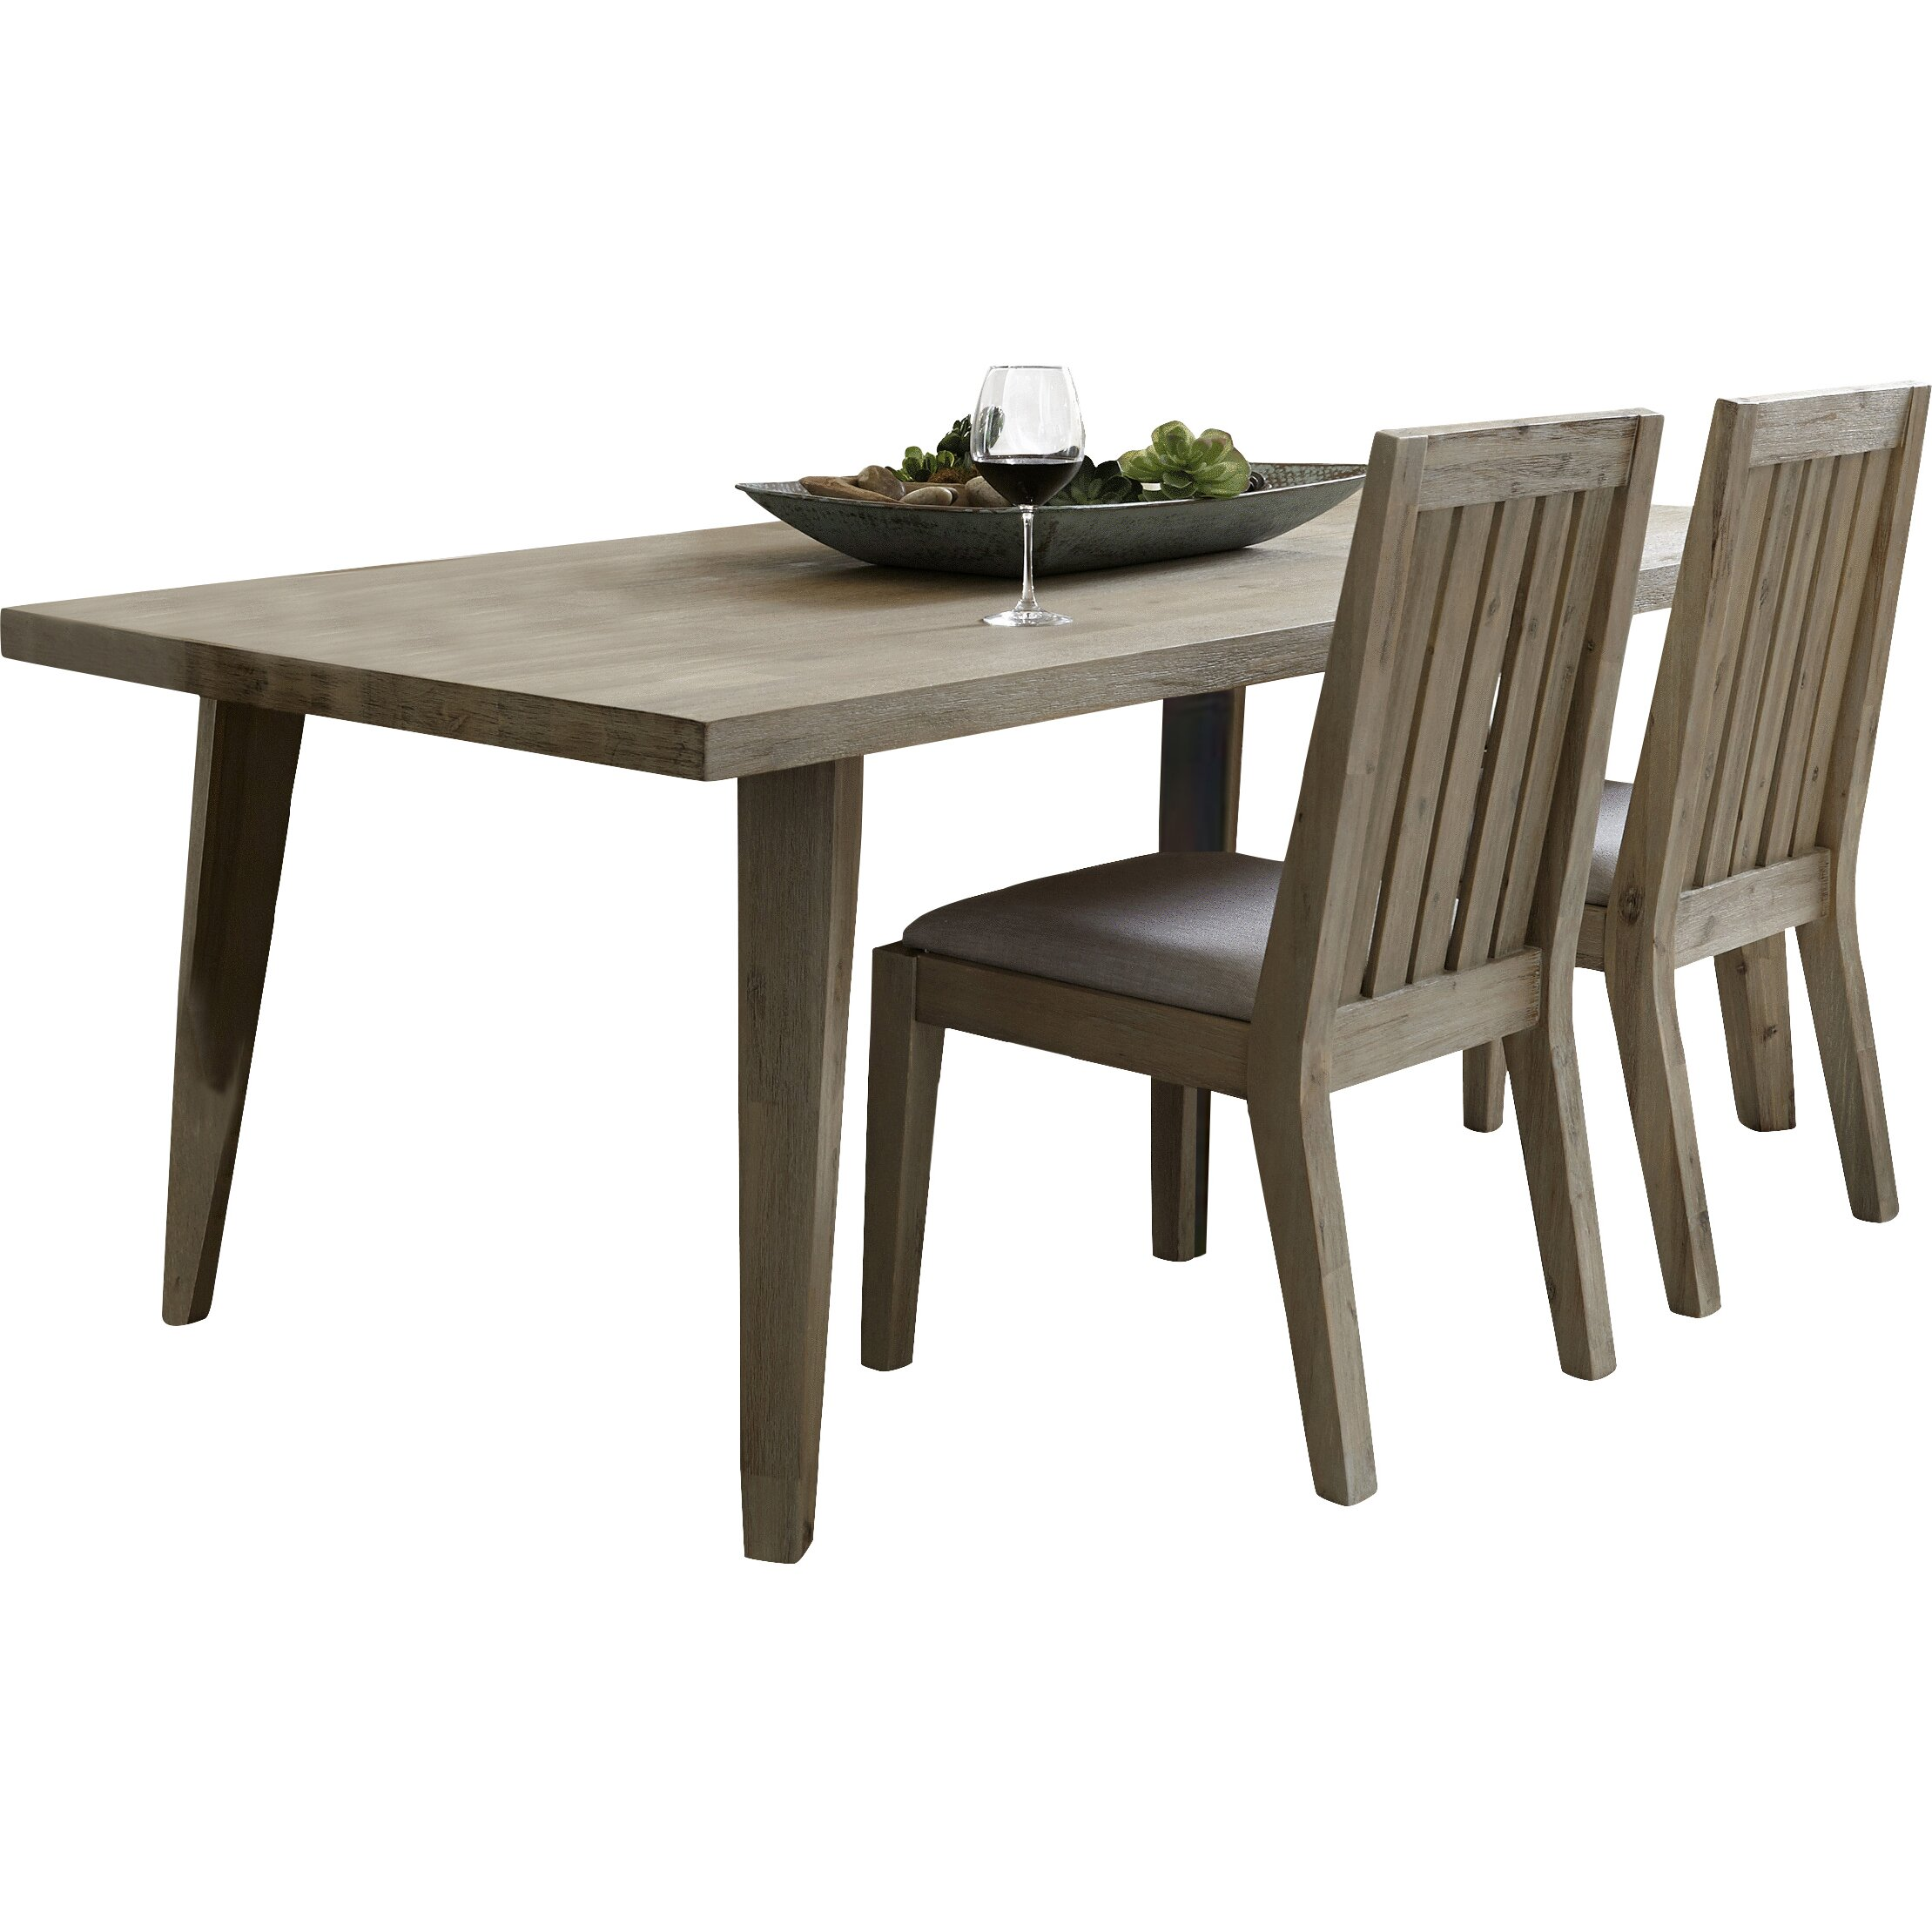 Casana furniture company harbourside 7 piece dining set for 7 piece dining set